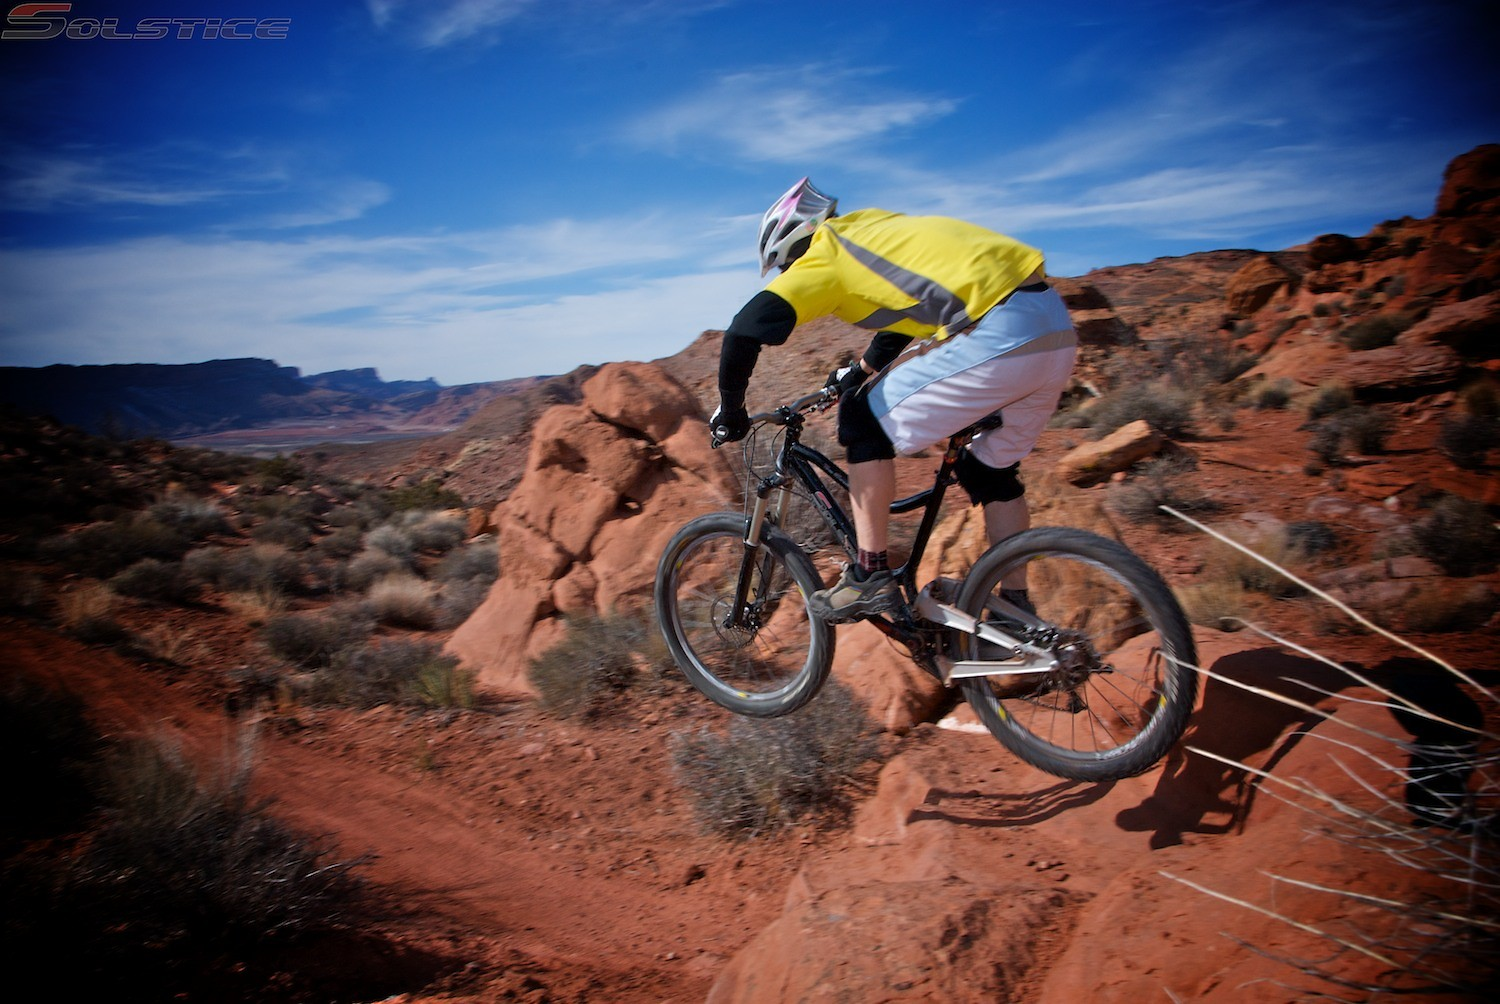 BTL 2209 - b-lec - Mountain Biking Pictures - Vital MTB